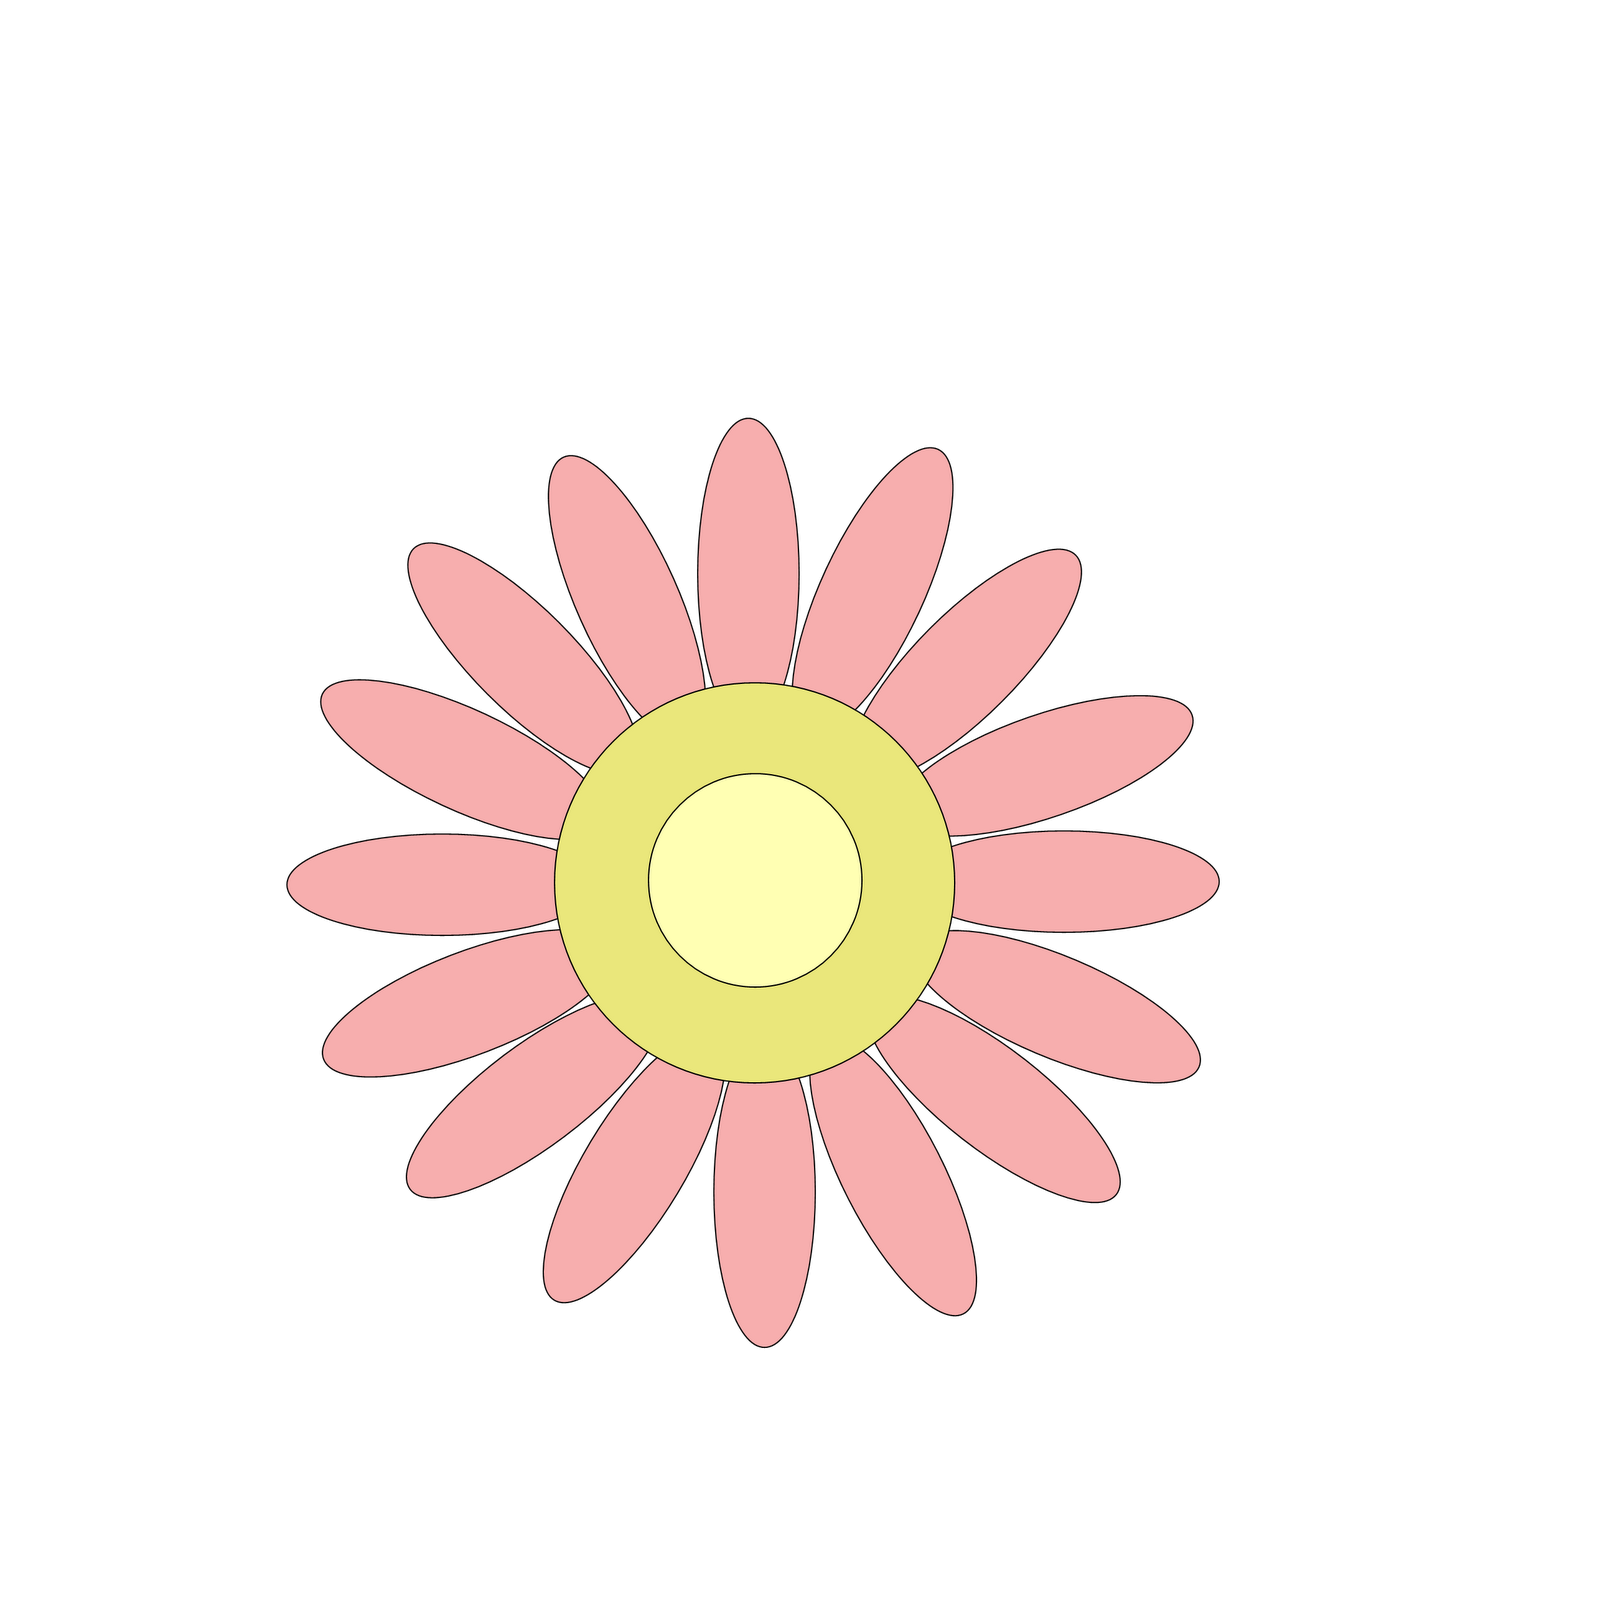 Free flower clipart png banner free download Free Flower Clipart - Clipart Kid banner free download